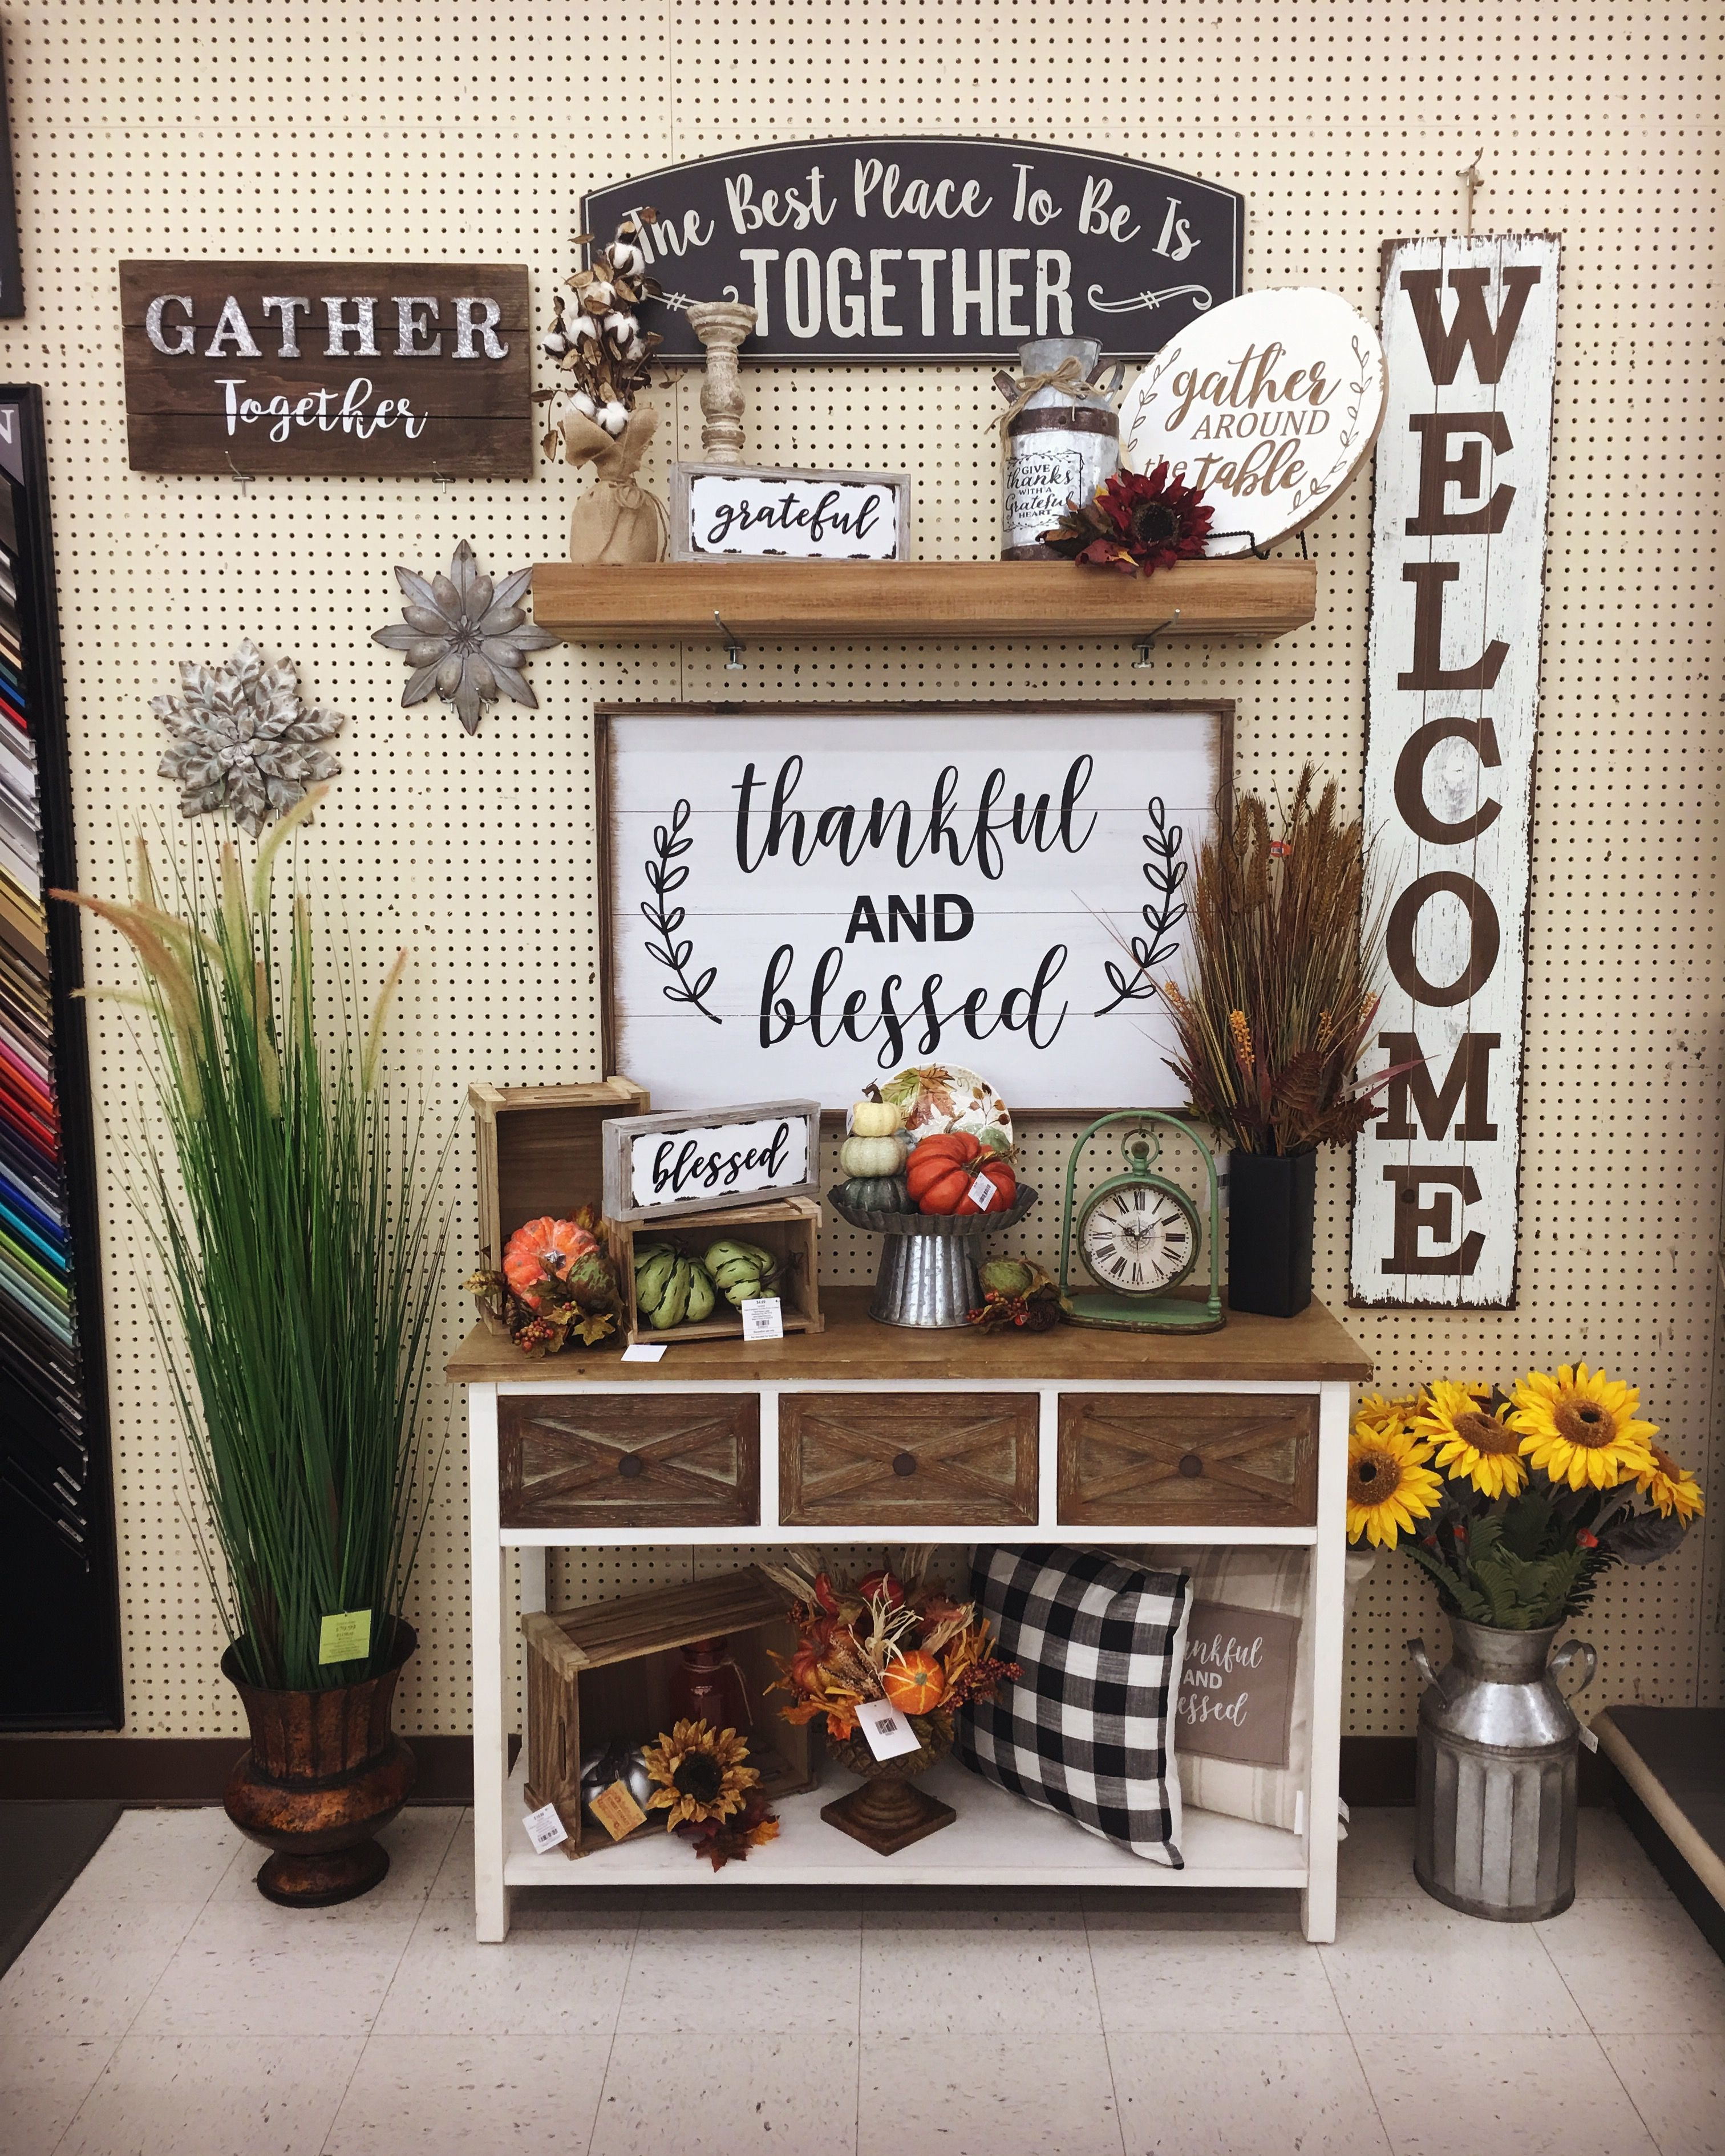 Big Thankful And Blessed Wall Frame Hobby Lobby Fall Decor Hobby Lobby Decor Decor